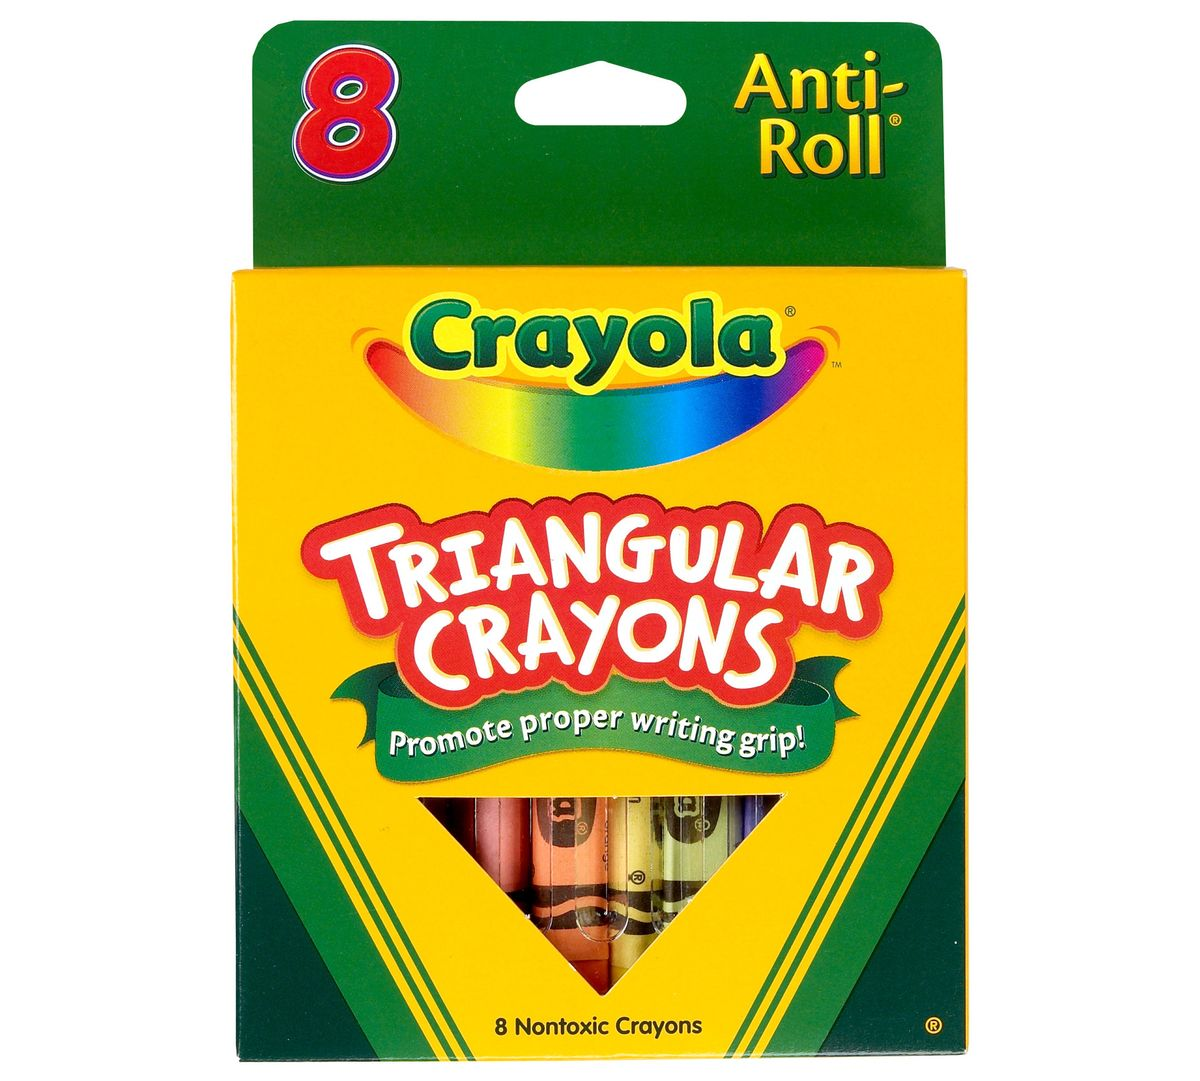 Anti-Roll Triangular Crayons - 8 Count